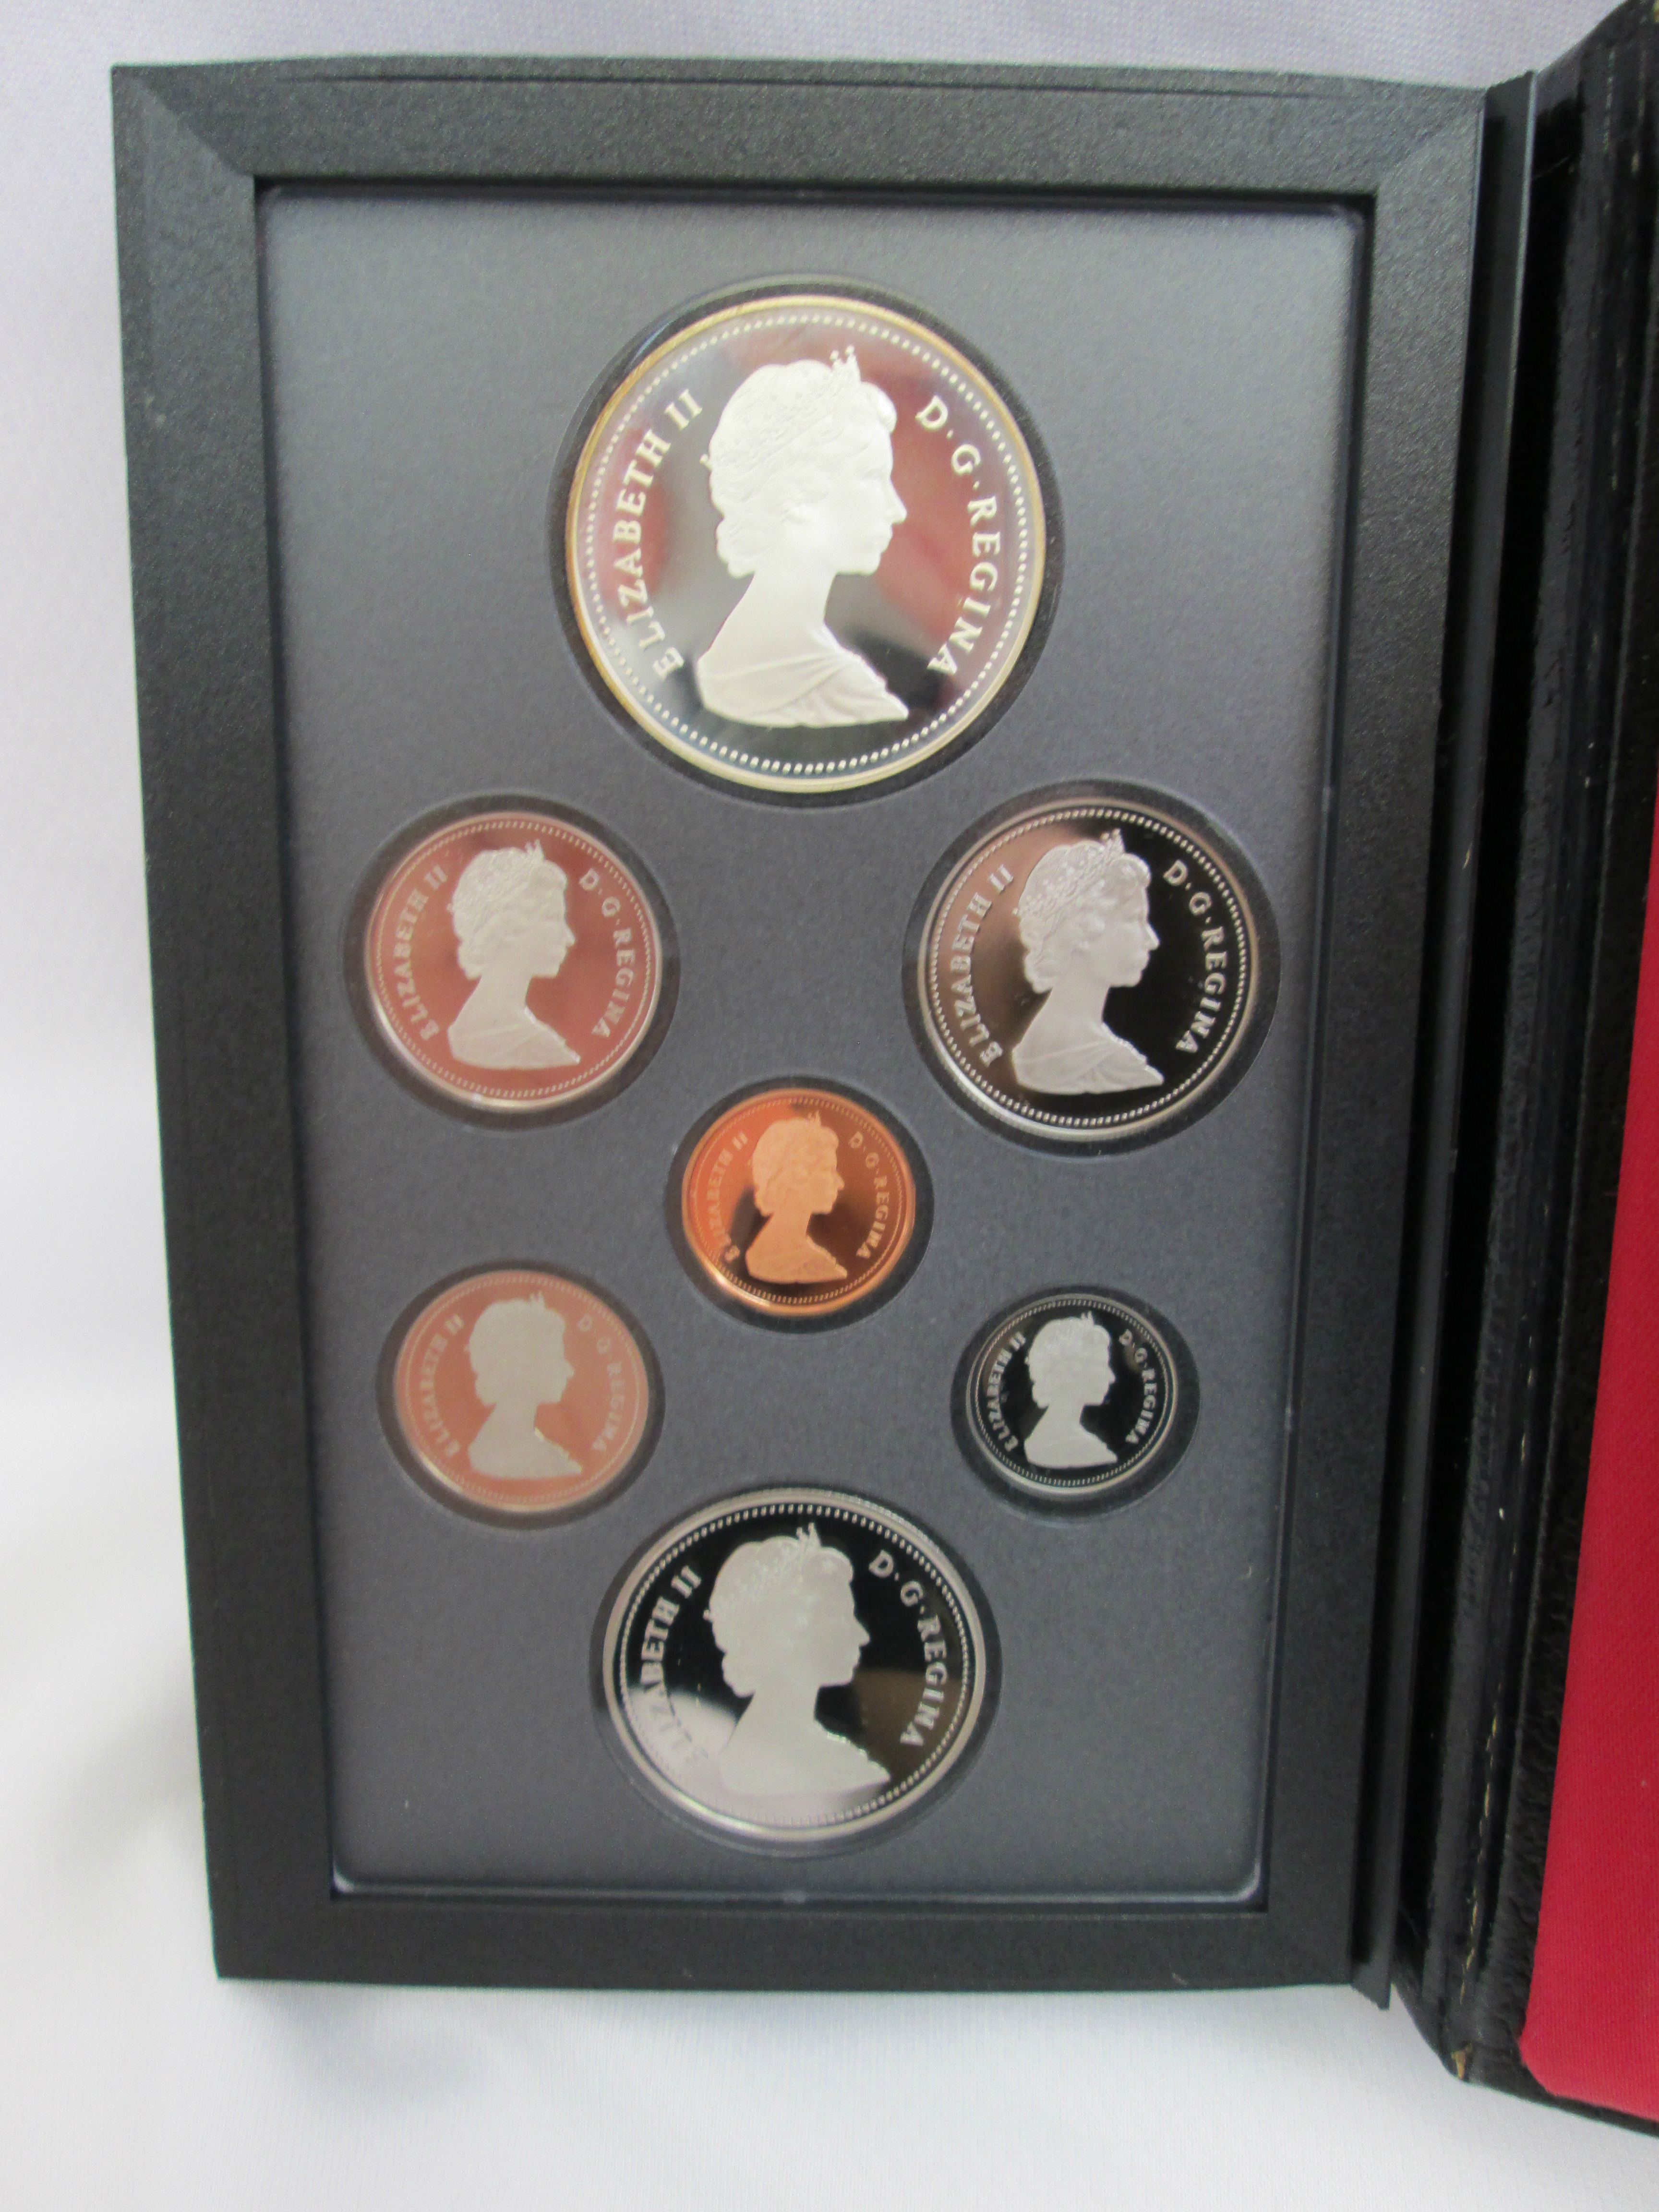 7 Coin Proof Set Royal Canadian Mint 1987 Current